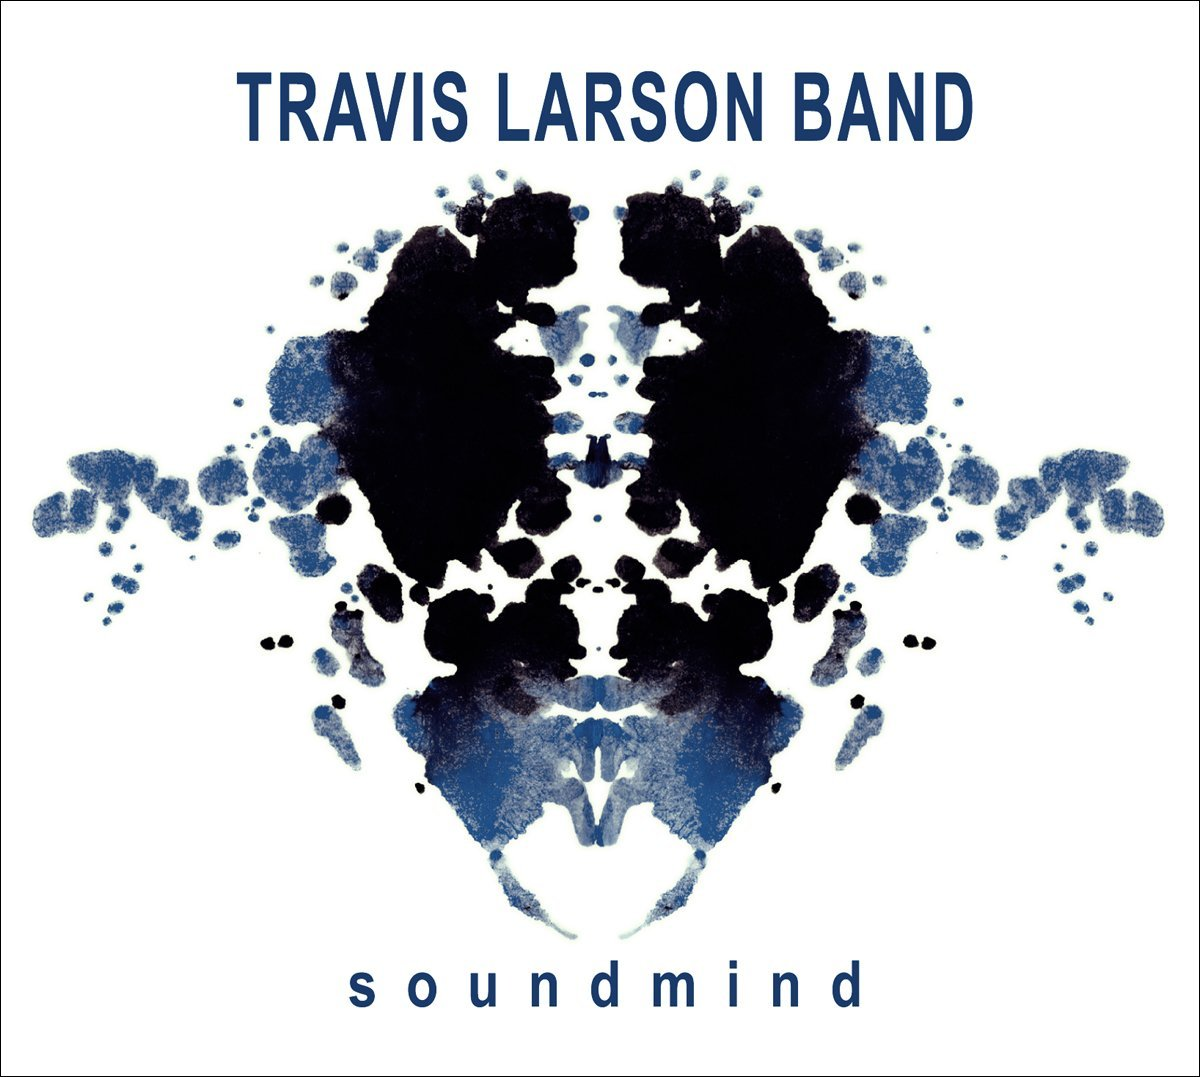 Travis Larson Band — Soundmind